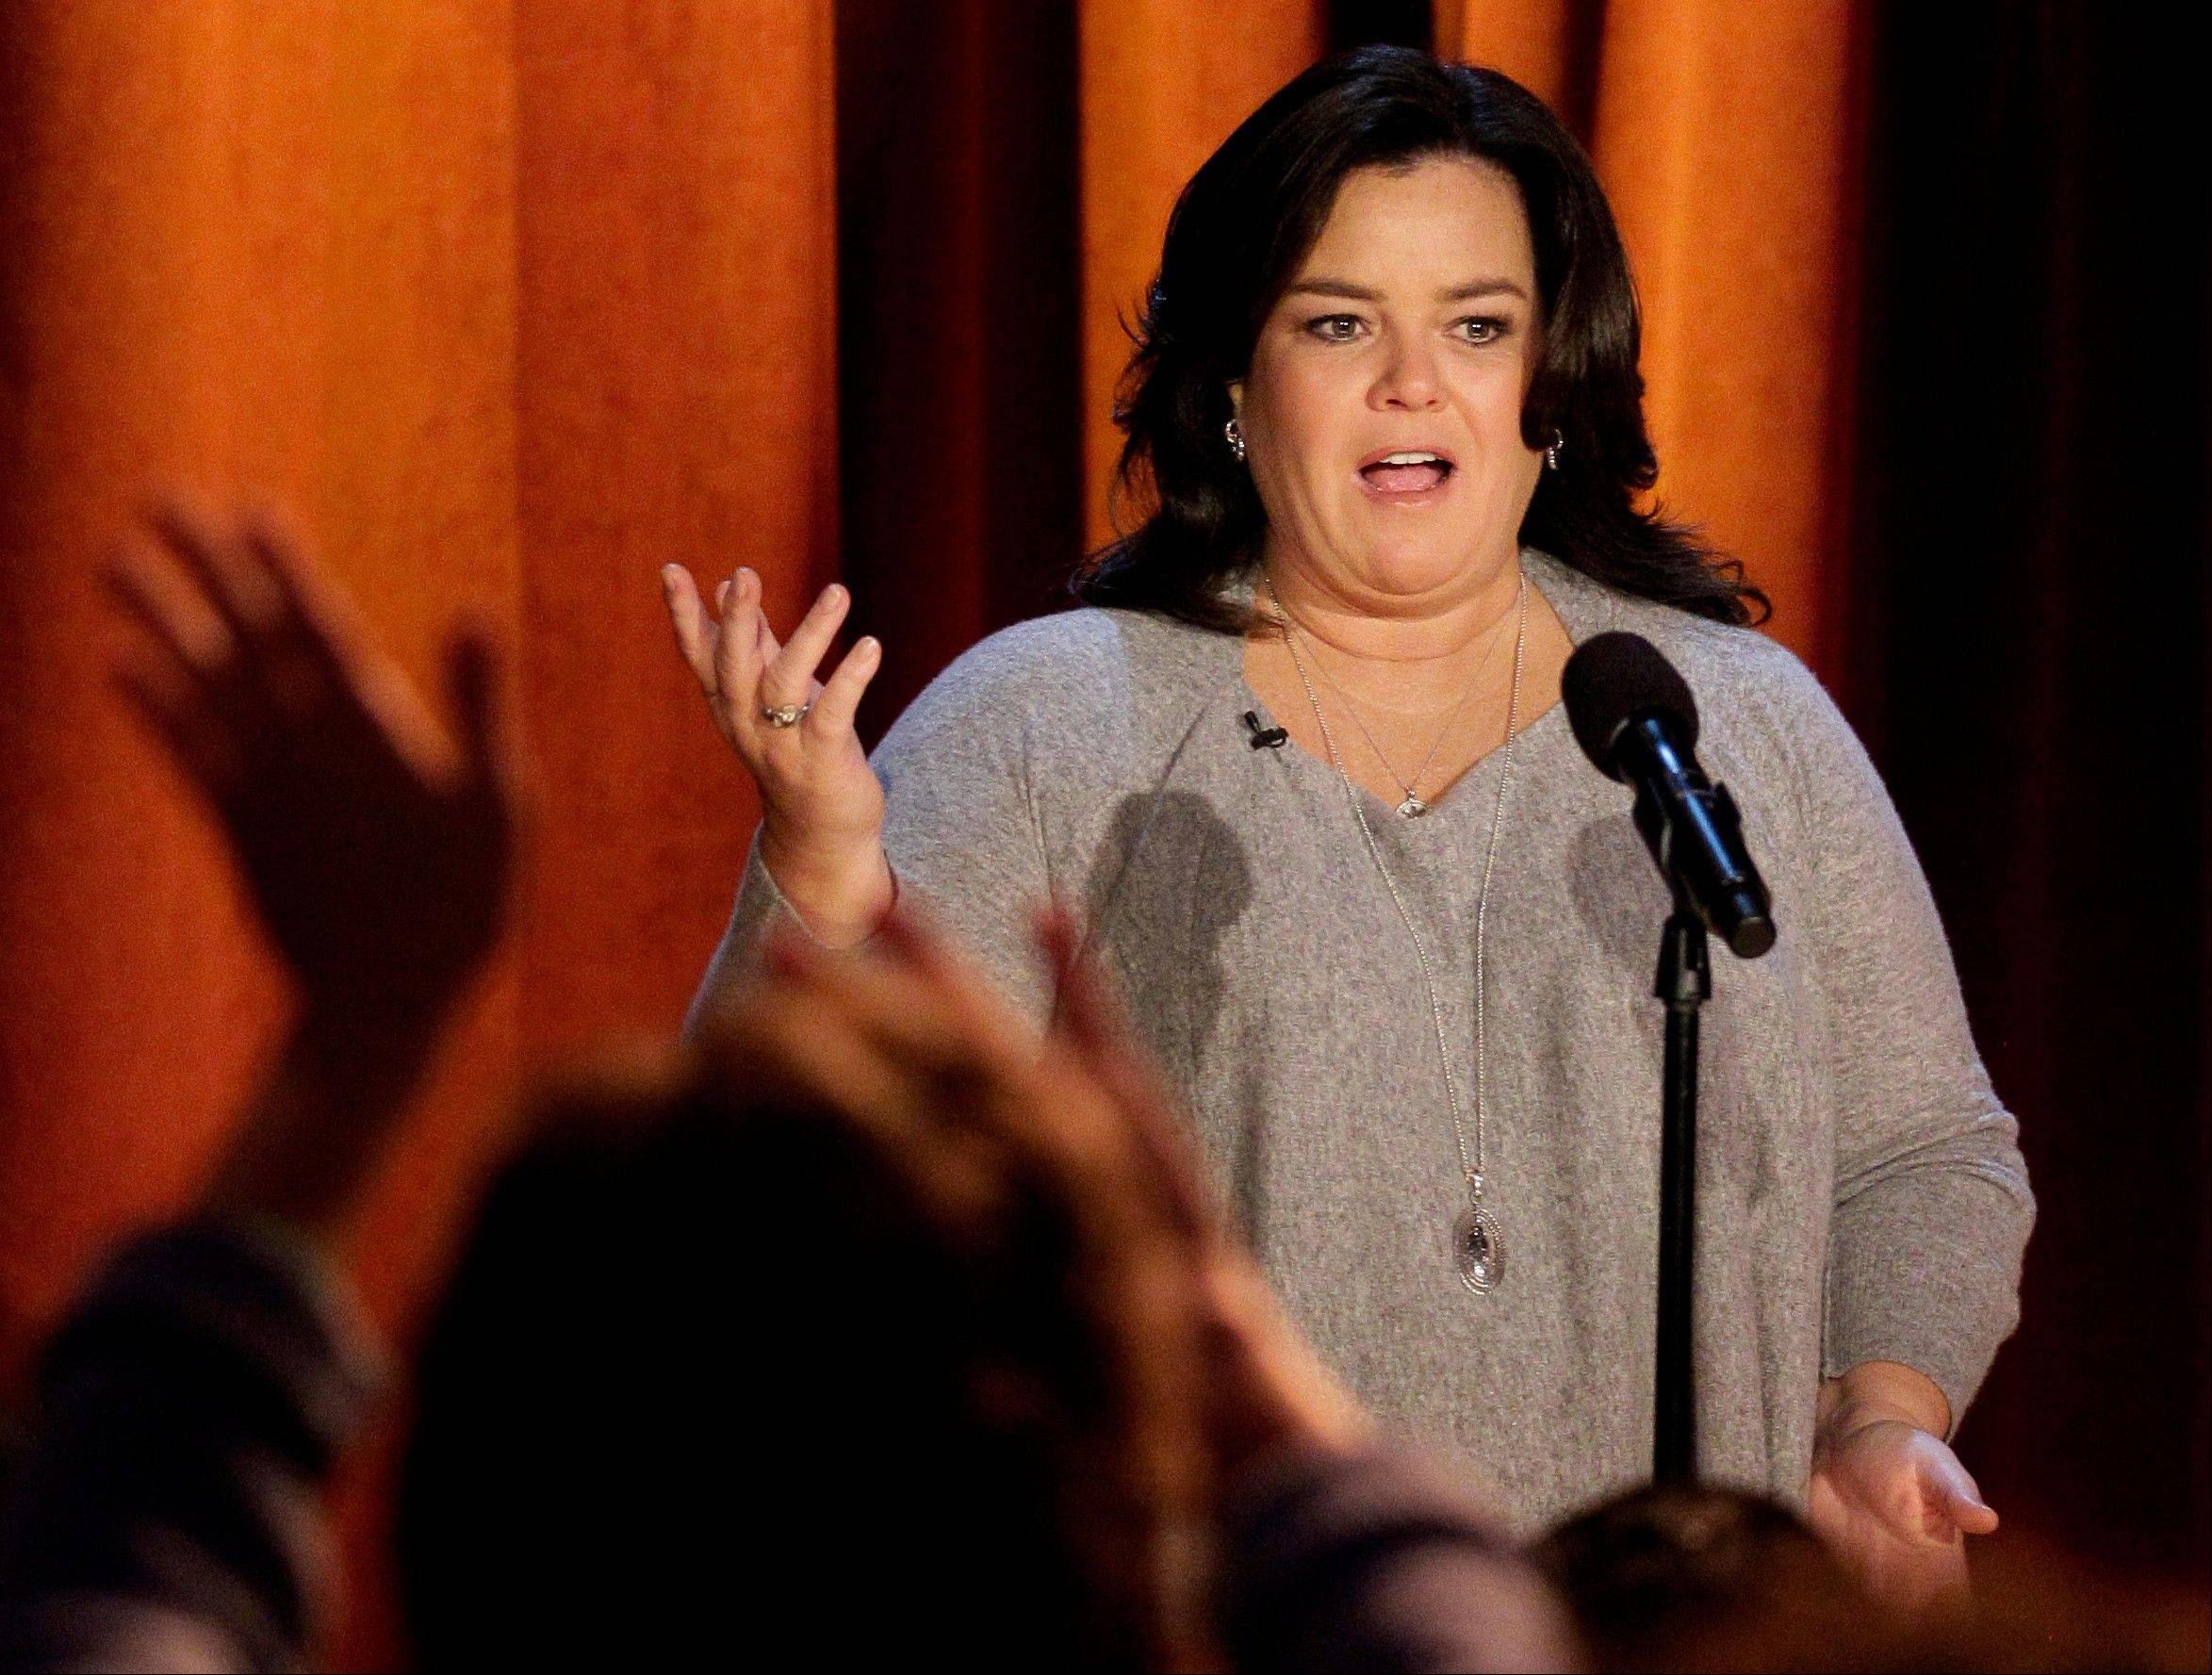 �The View� announced Monday that Rosie O�Donnell will be a guest on the daytime gabfest on Feb. 7.